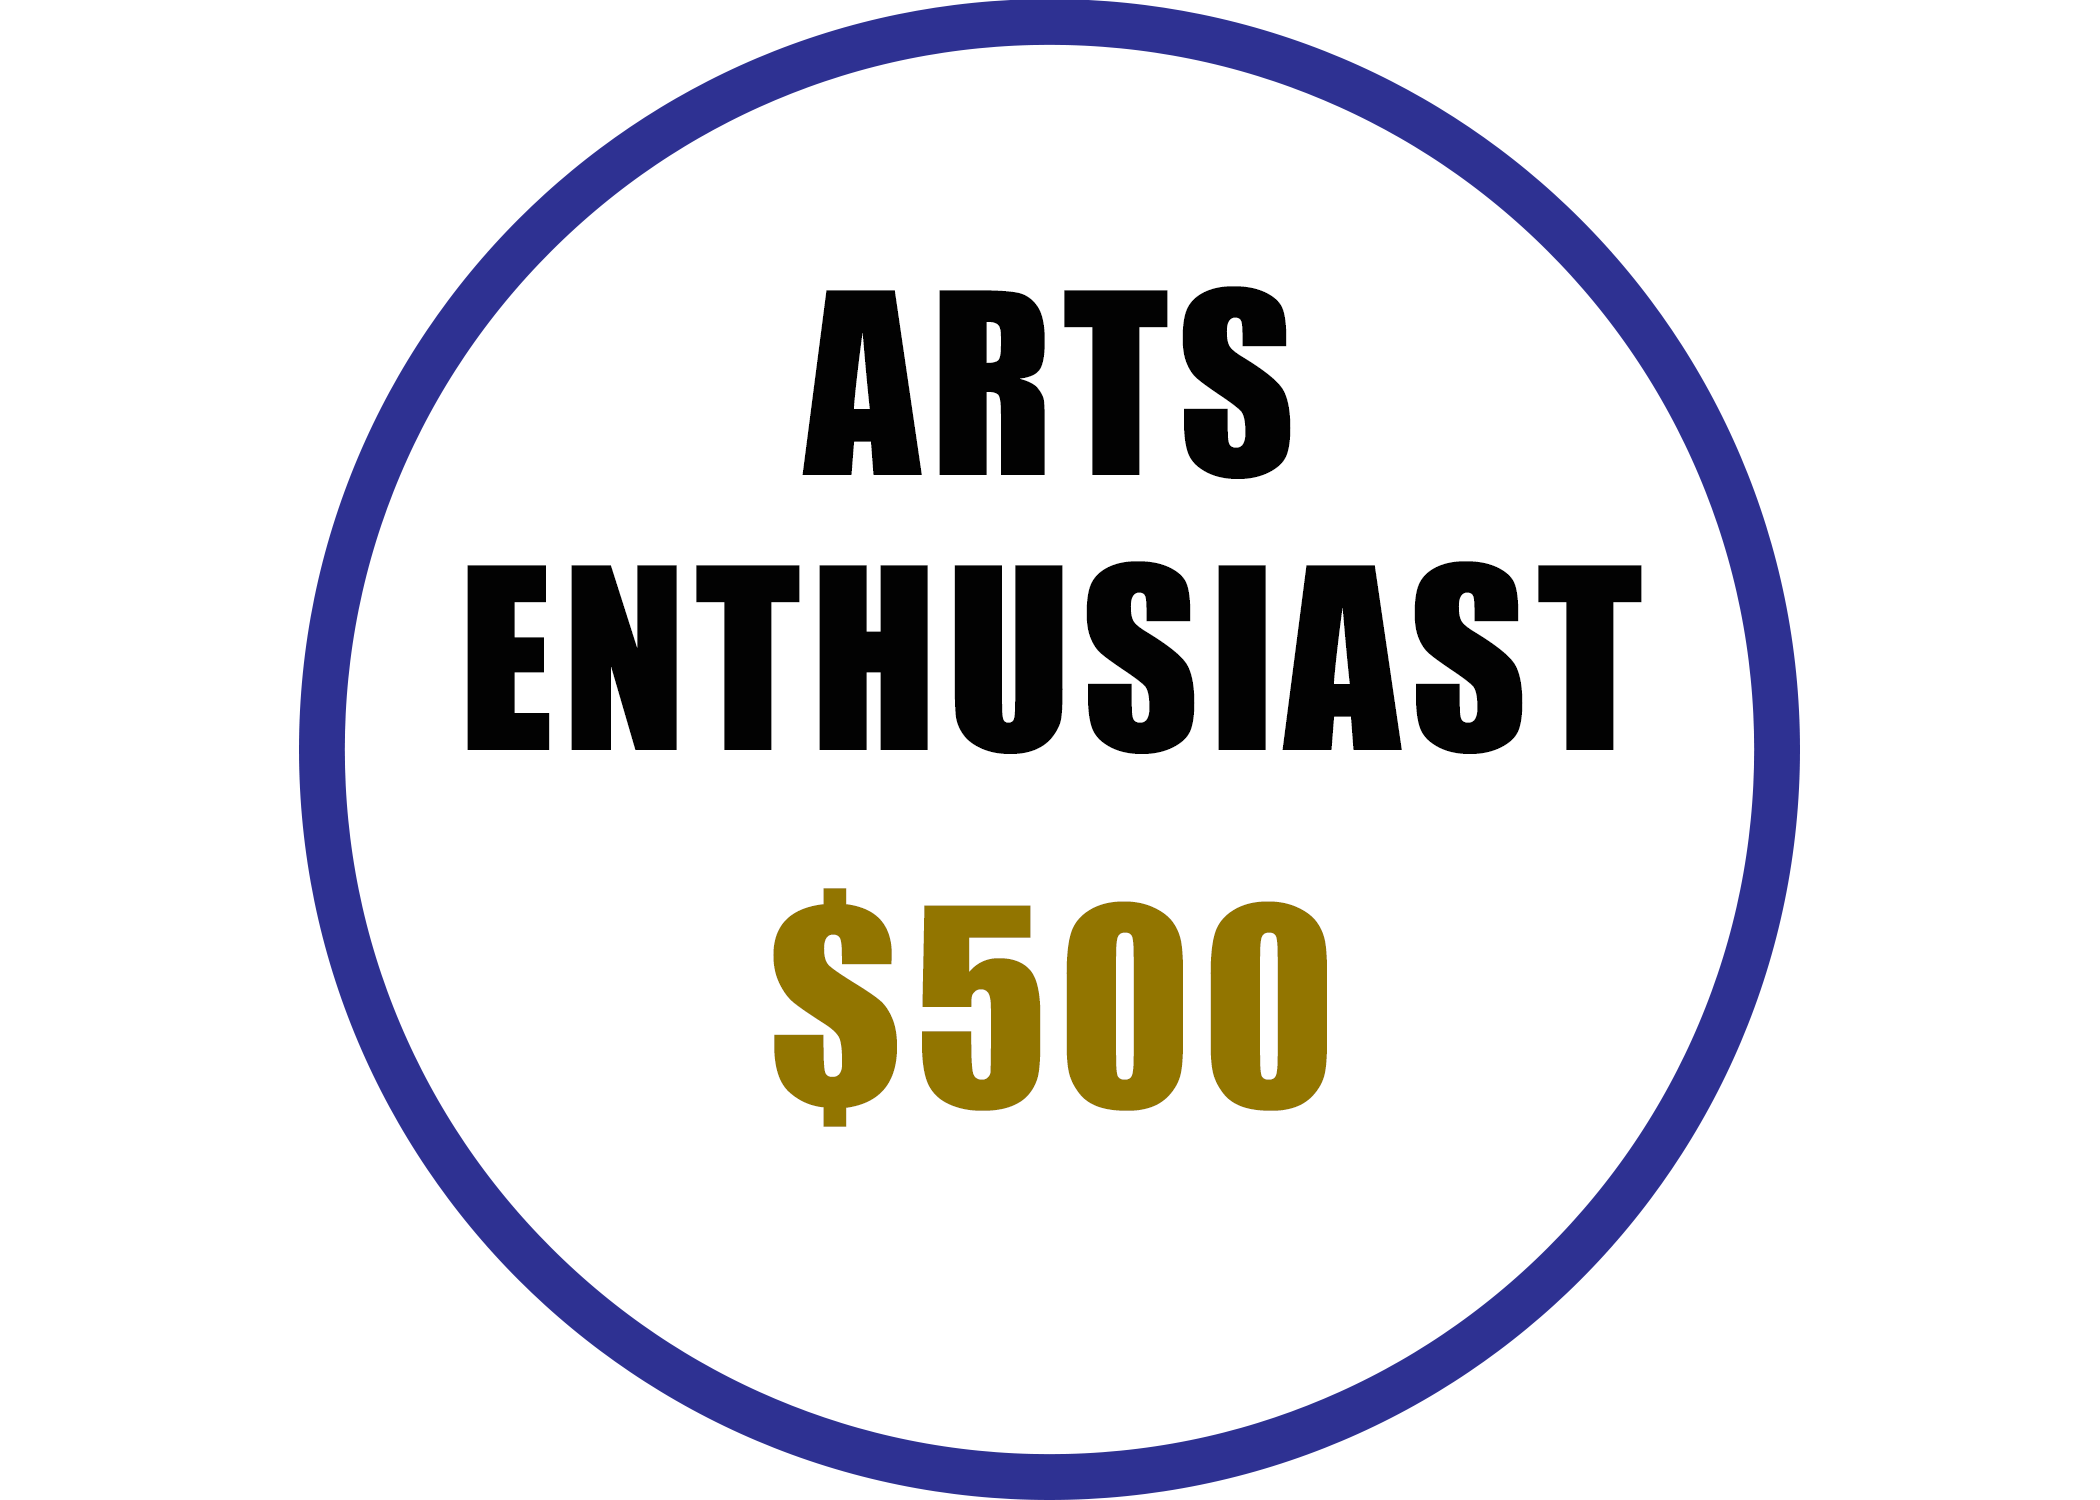 Arts Enthusiast benefits include:  -Recognition on the Arts Council website  -Voting rights at the Annual Meeting -20% discount on Artsplosion! Camps for kids -2 VIP passes at Ebb & Flow Festival -Discounted rental at Arts Council venues -Advance ticket purchase opportunity for River City Jazz Master Series